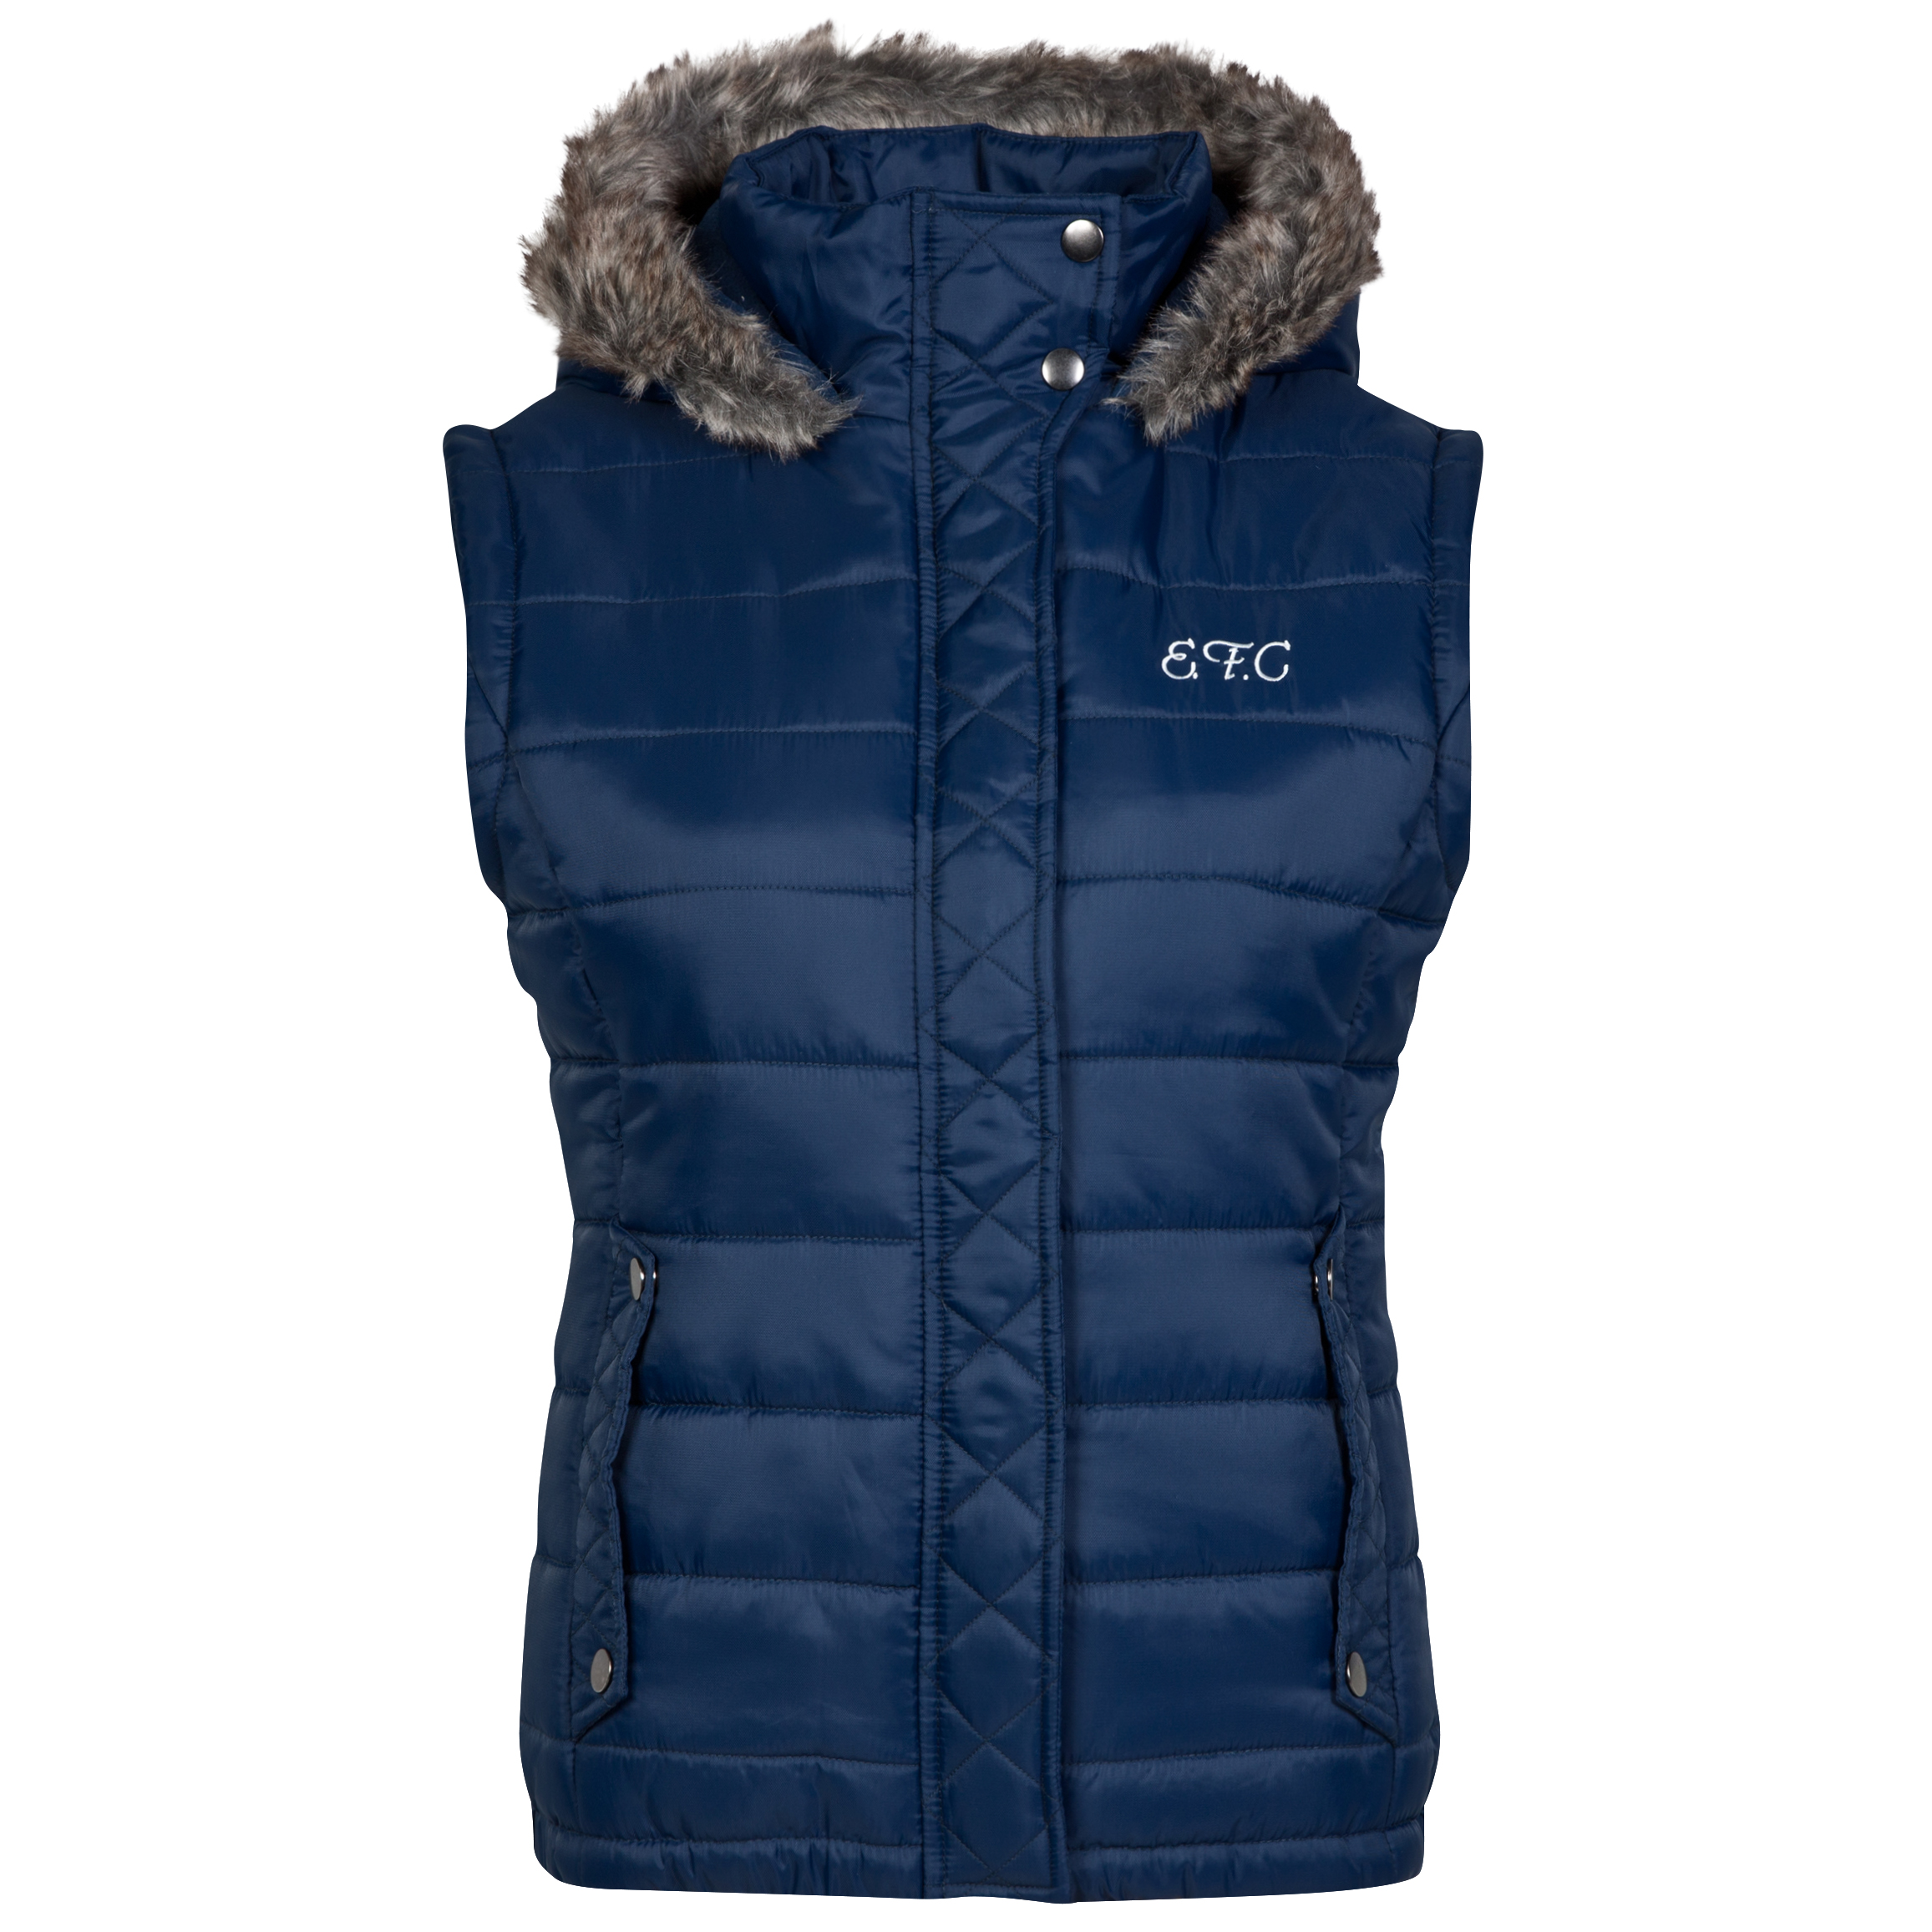 Everton Gilet - Navy - Womens